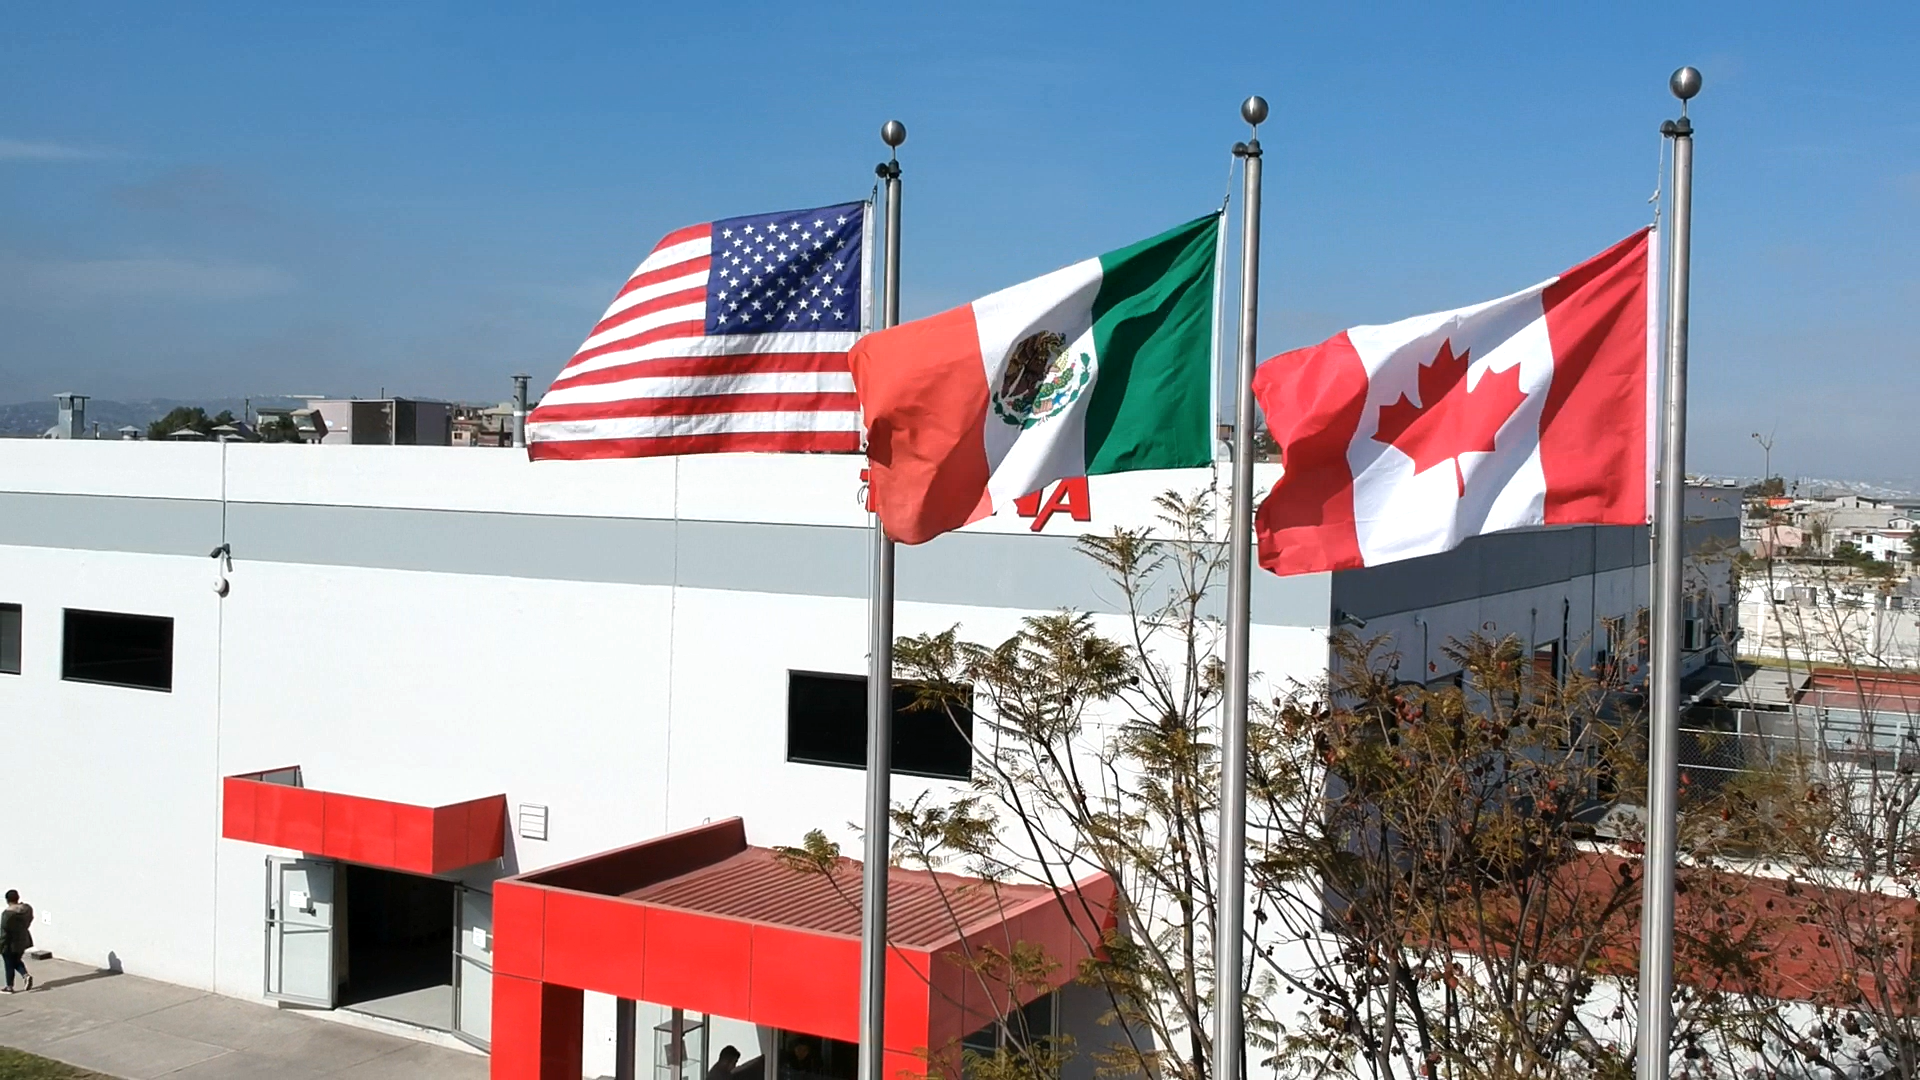 TACNA USA, Mexico and Canada